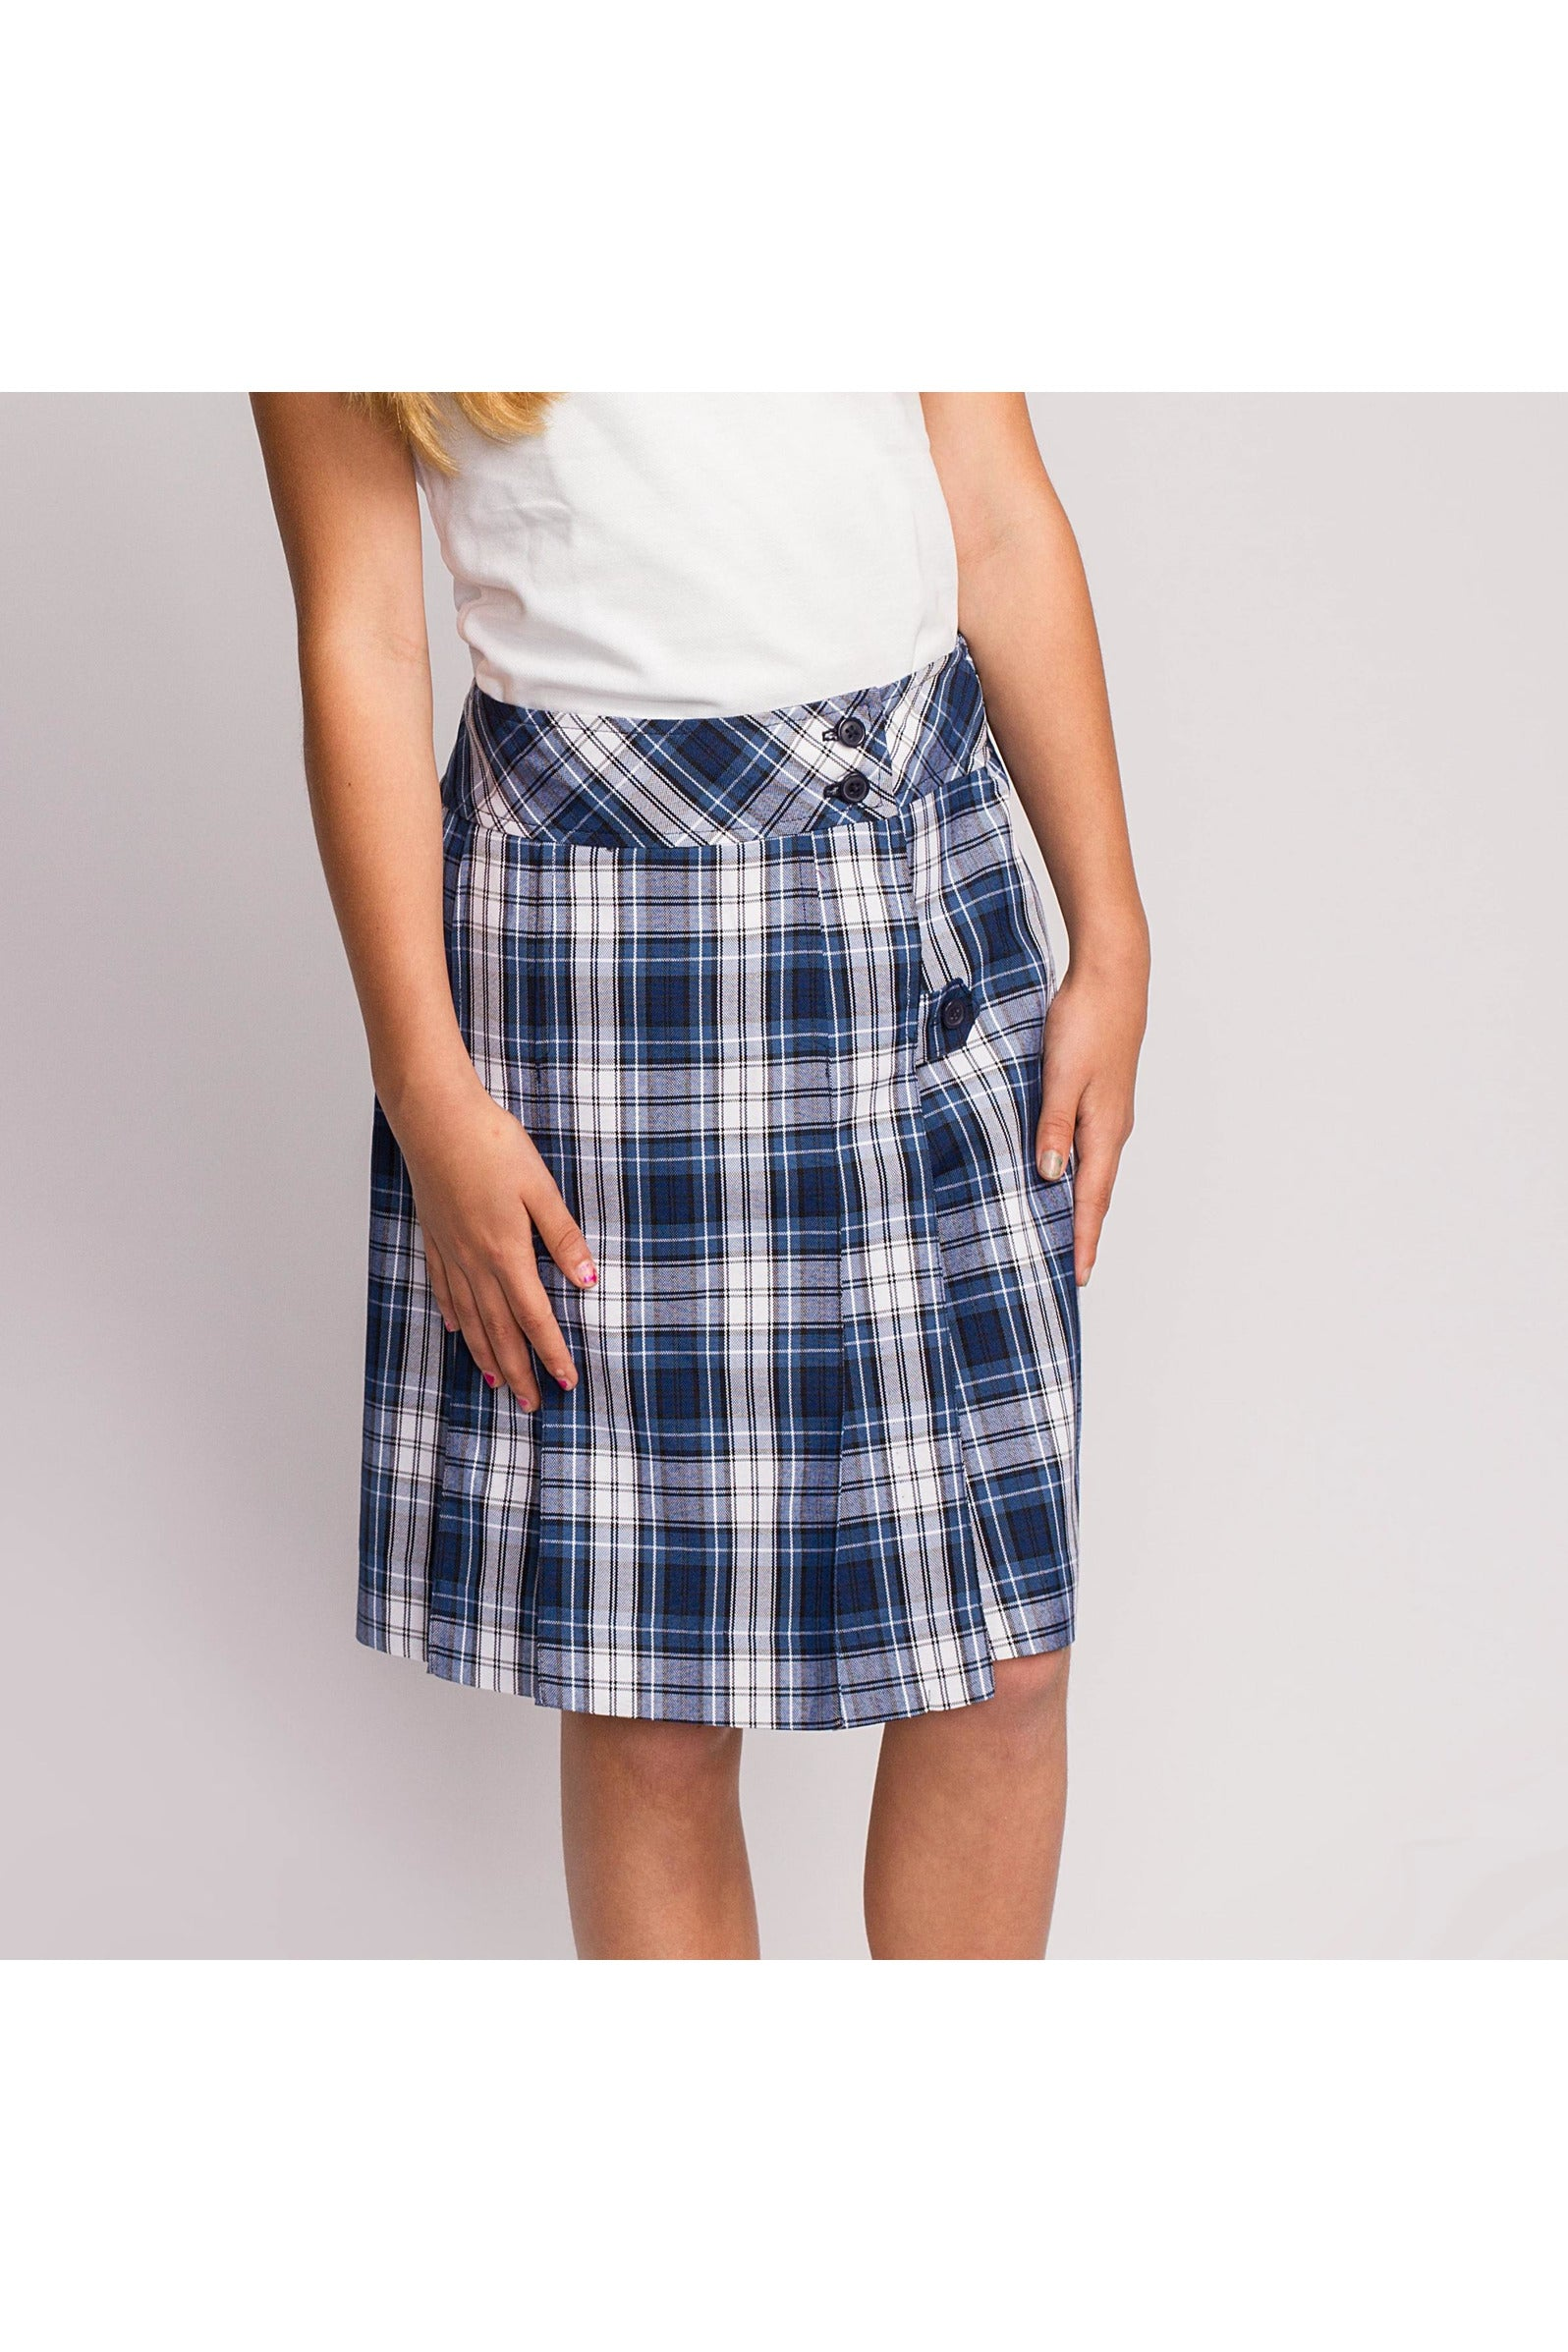 Blue Plaid Mock Wrap Skirt - RC Uniforms